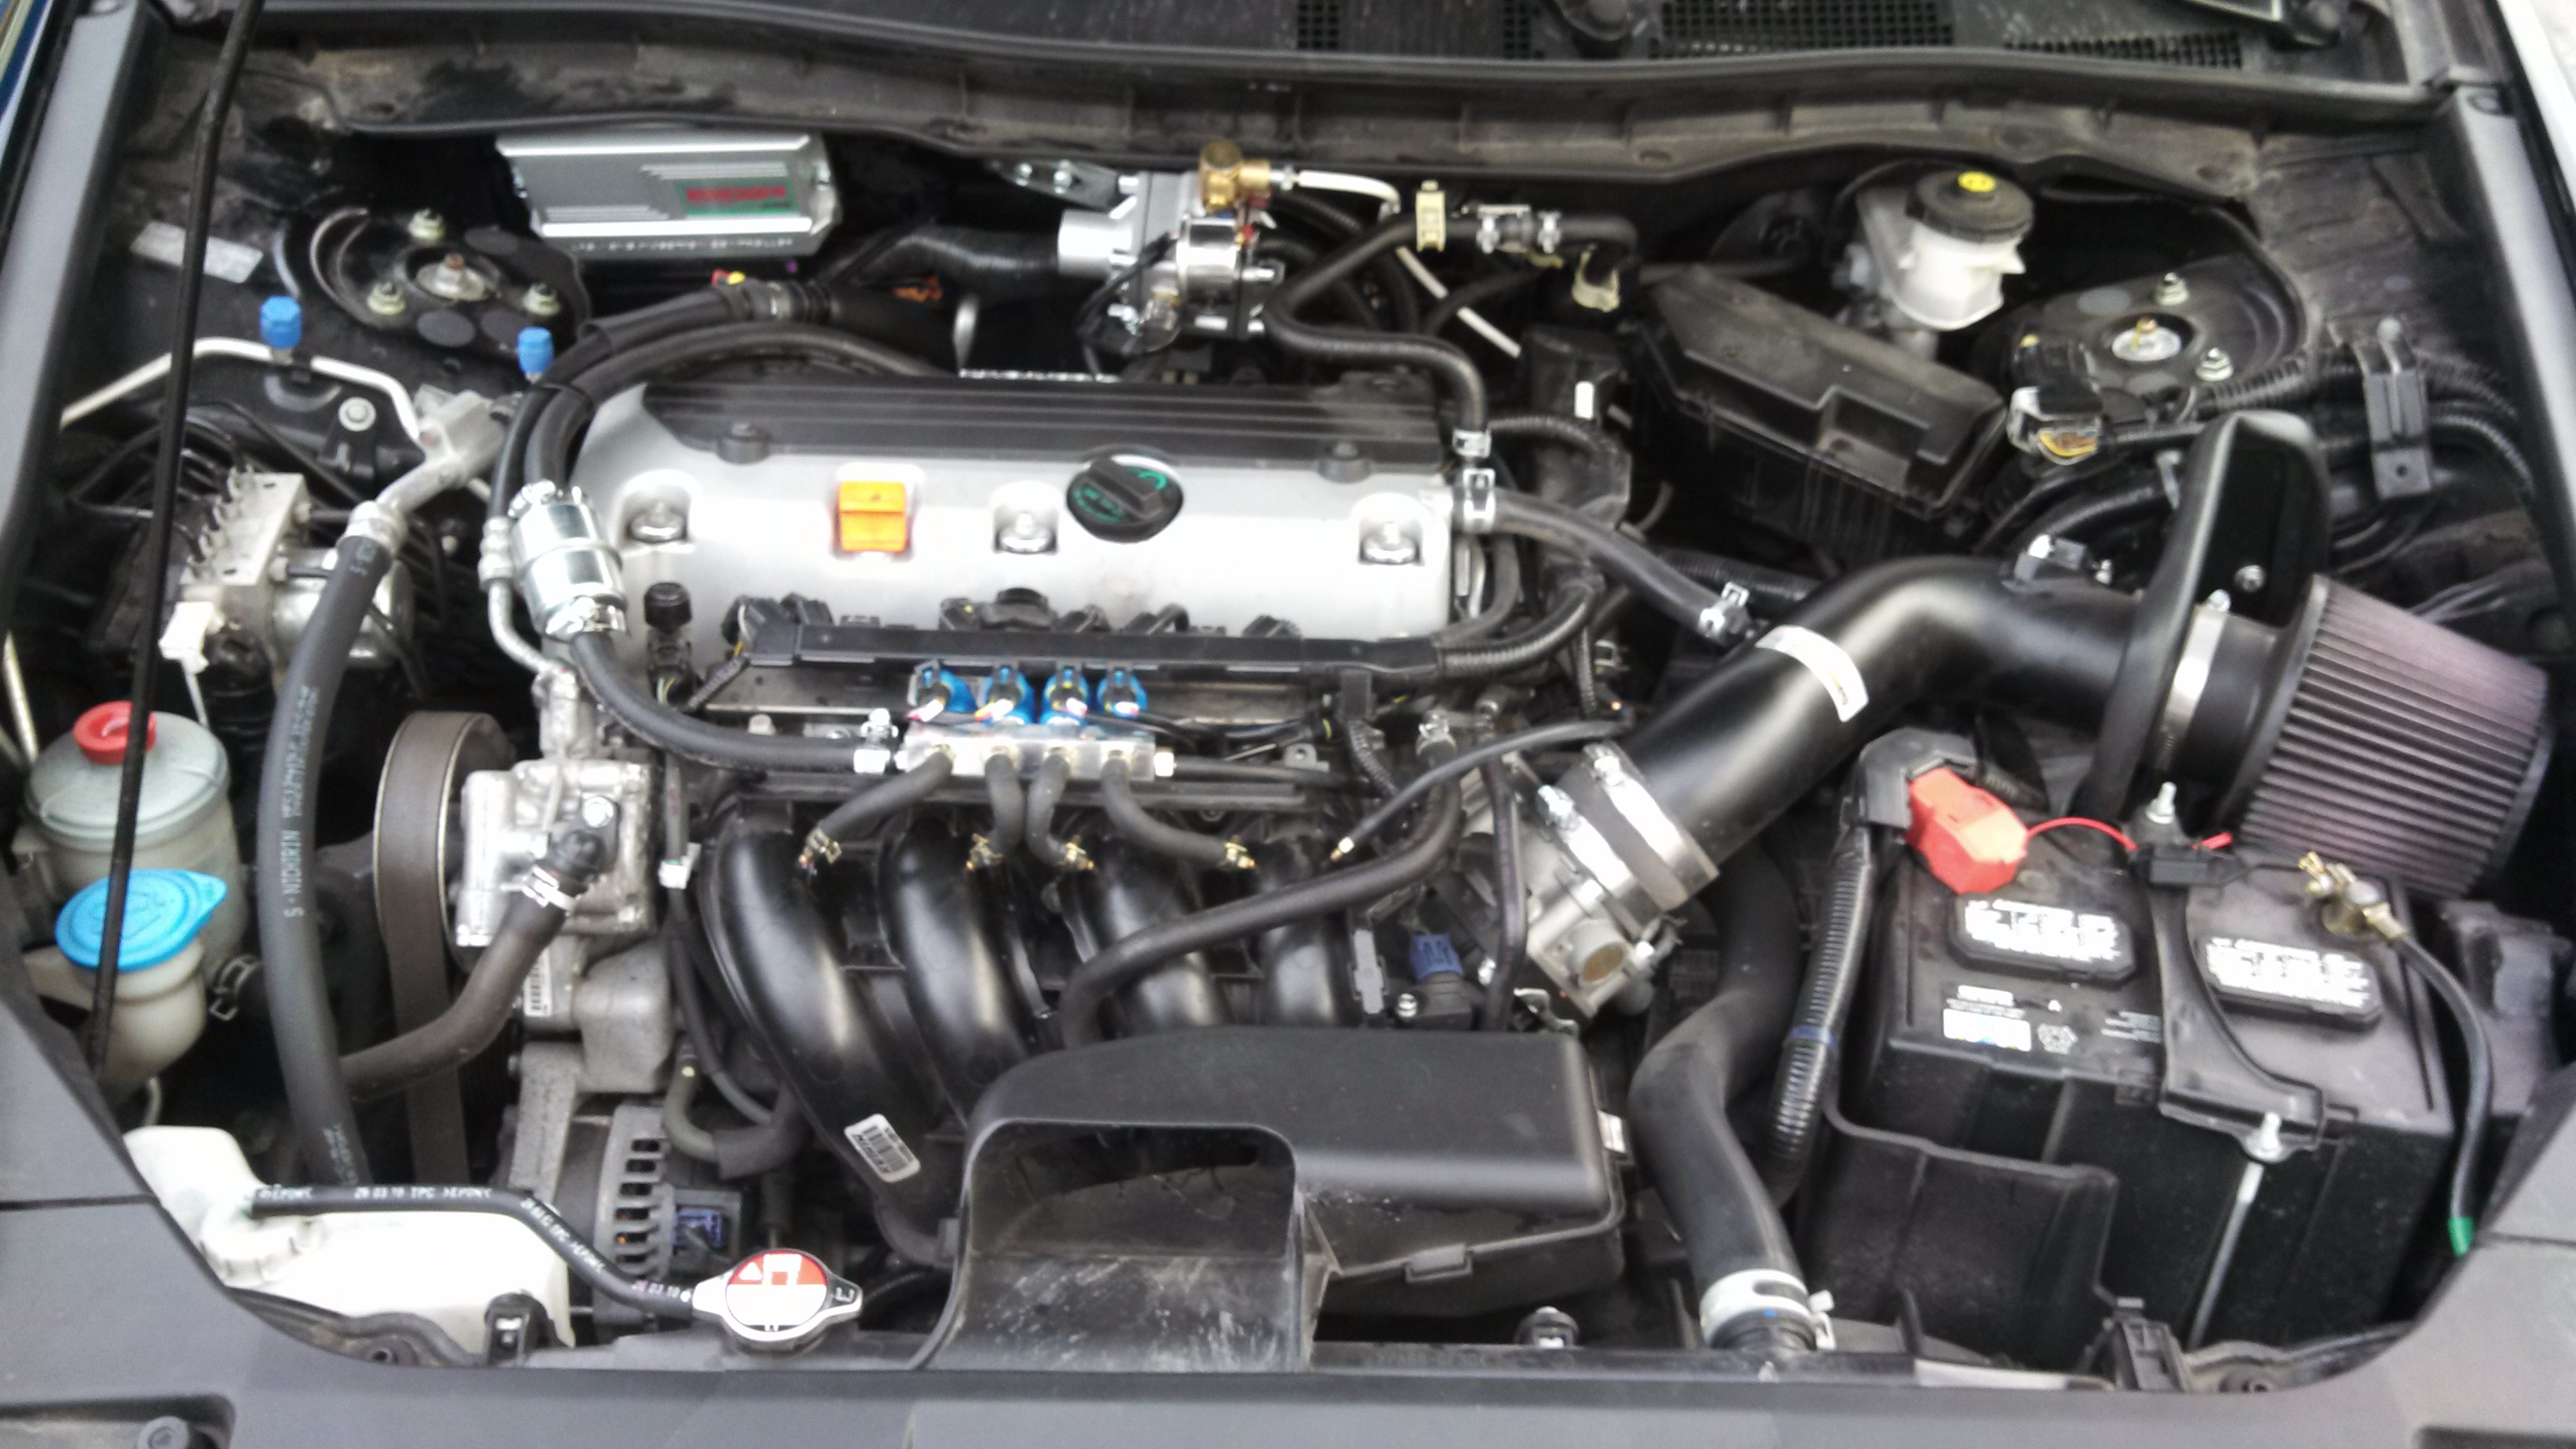 Honda Accord Under The Hood Cng Complete Cng Complete